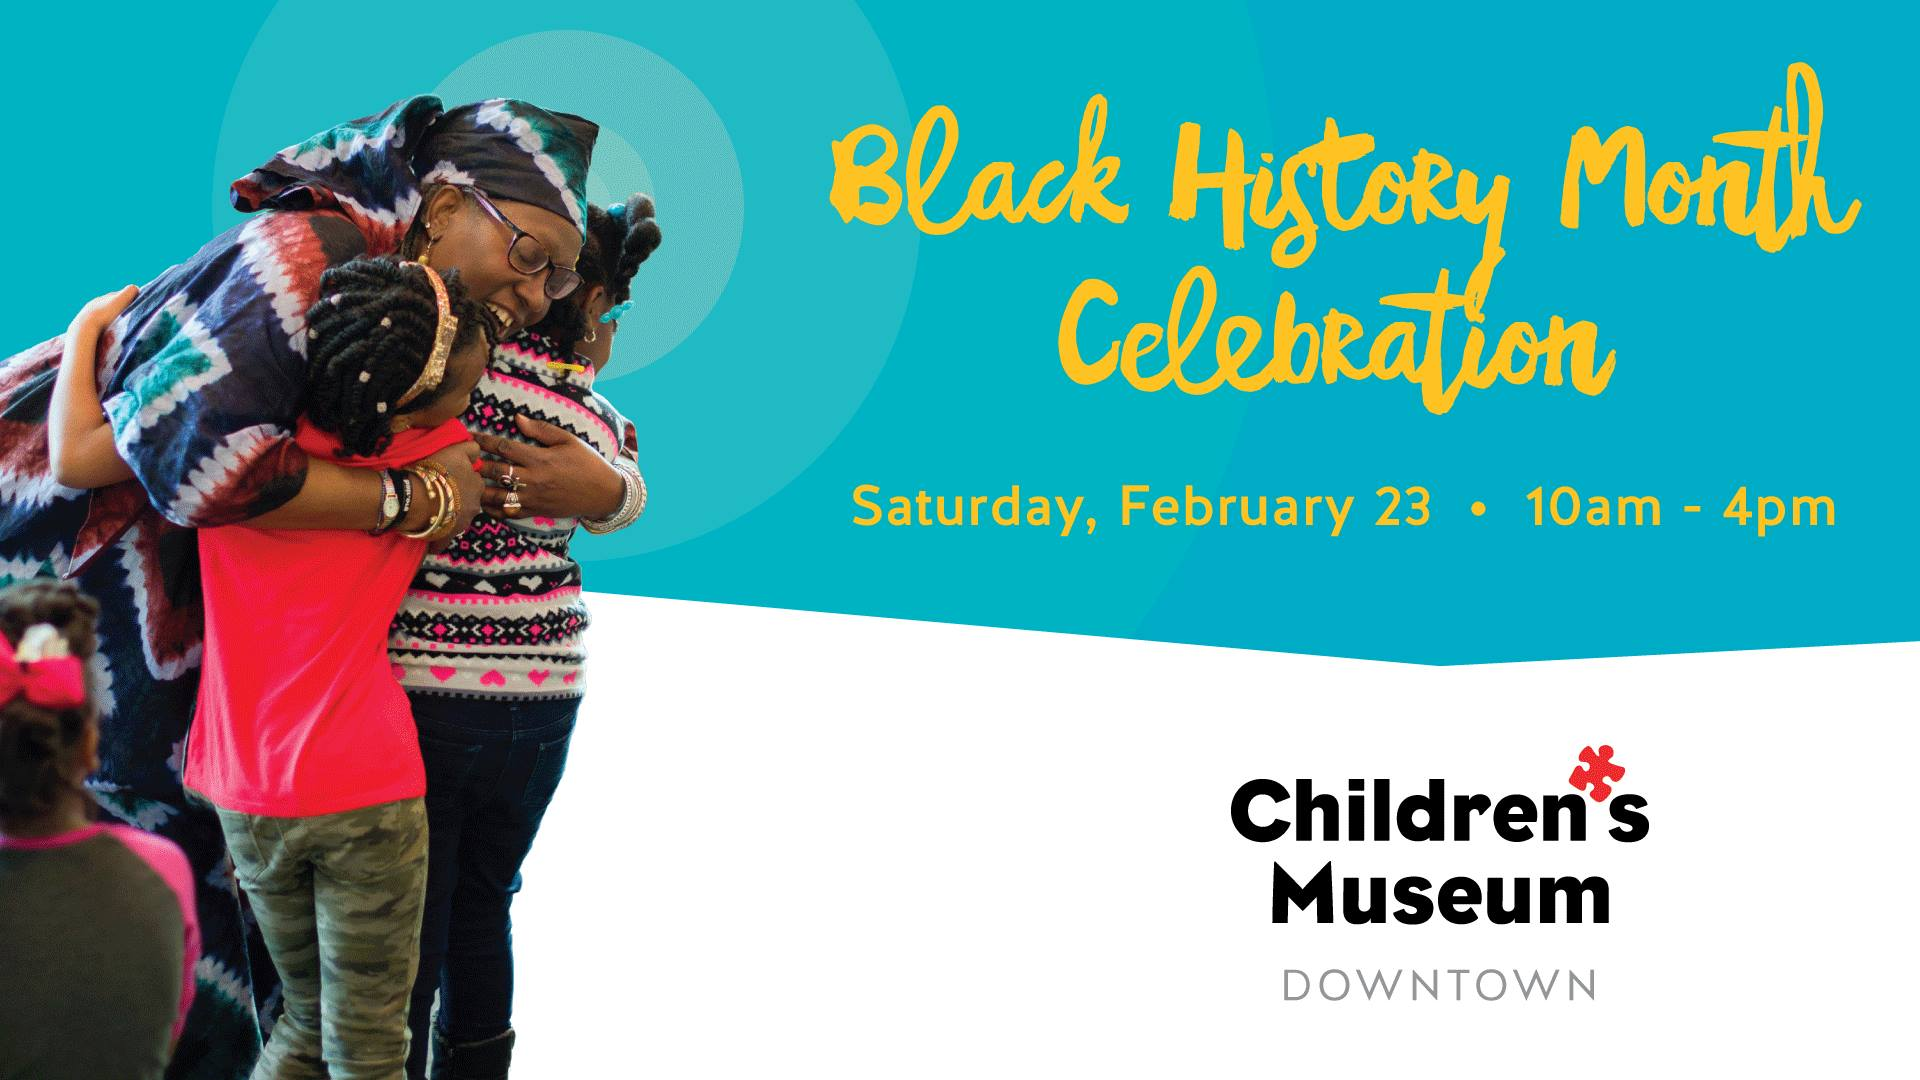 Black History Month Celebration at the Children's Museum